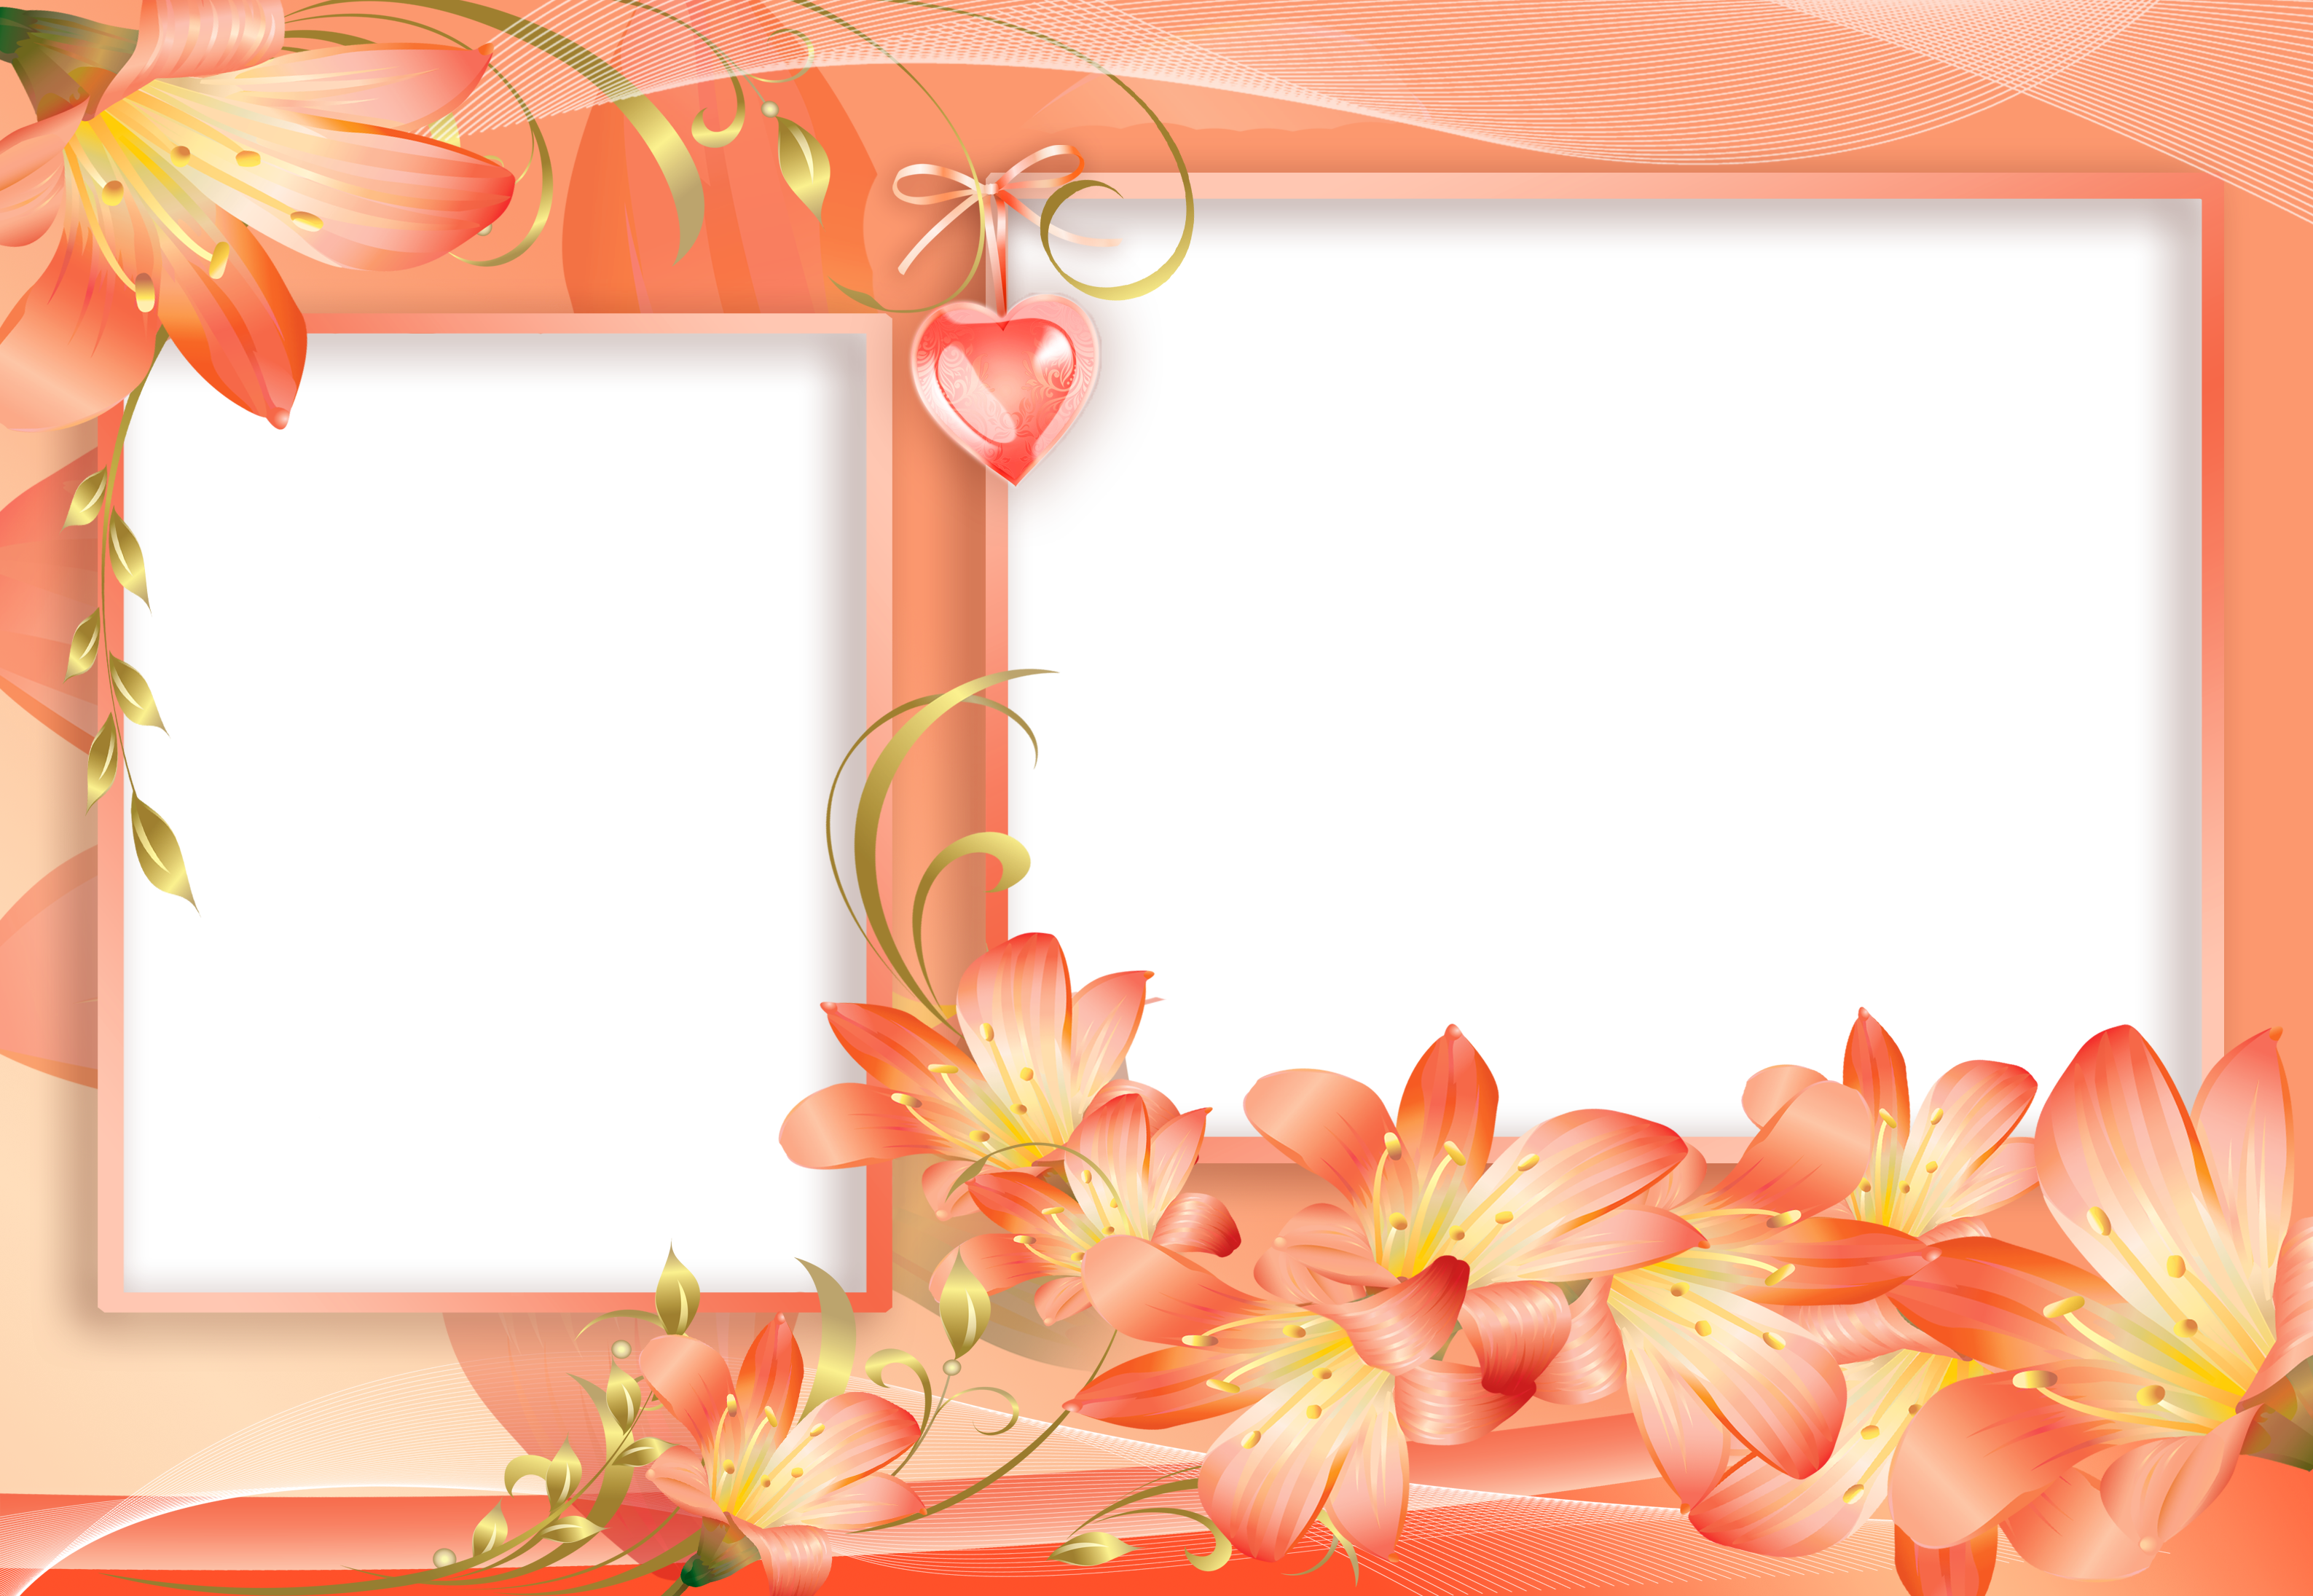 Png photo frames free. Orange and yellow flowers